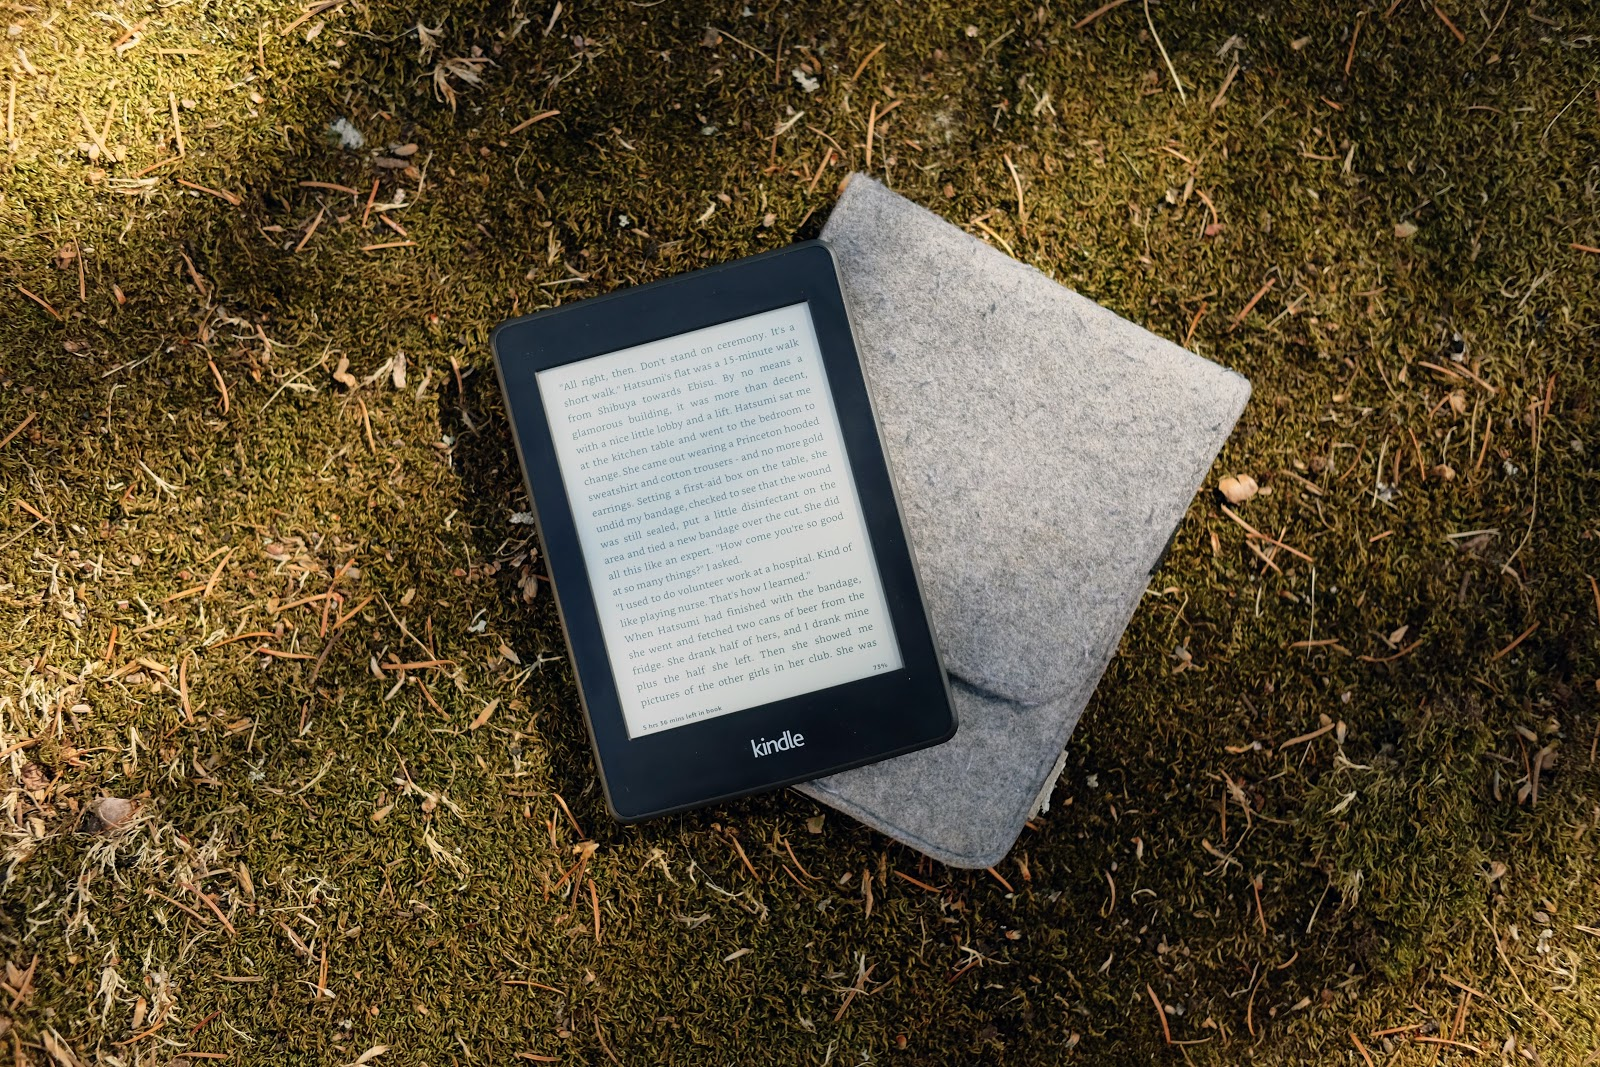 Kindle reading device and grey felt cover laying on the grass.